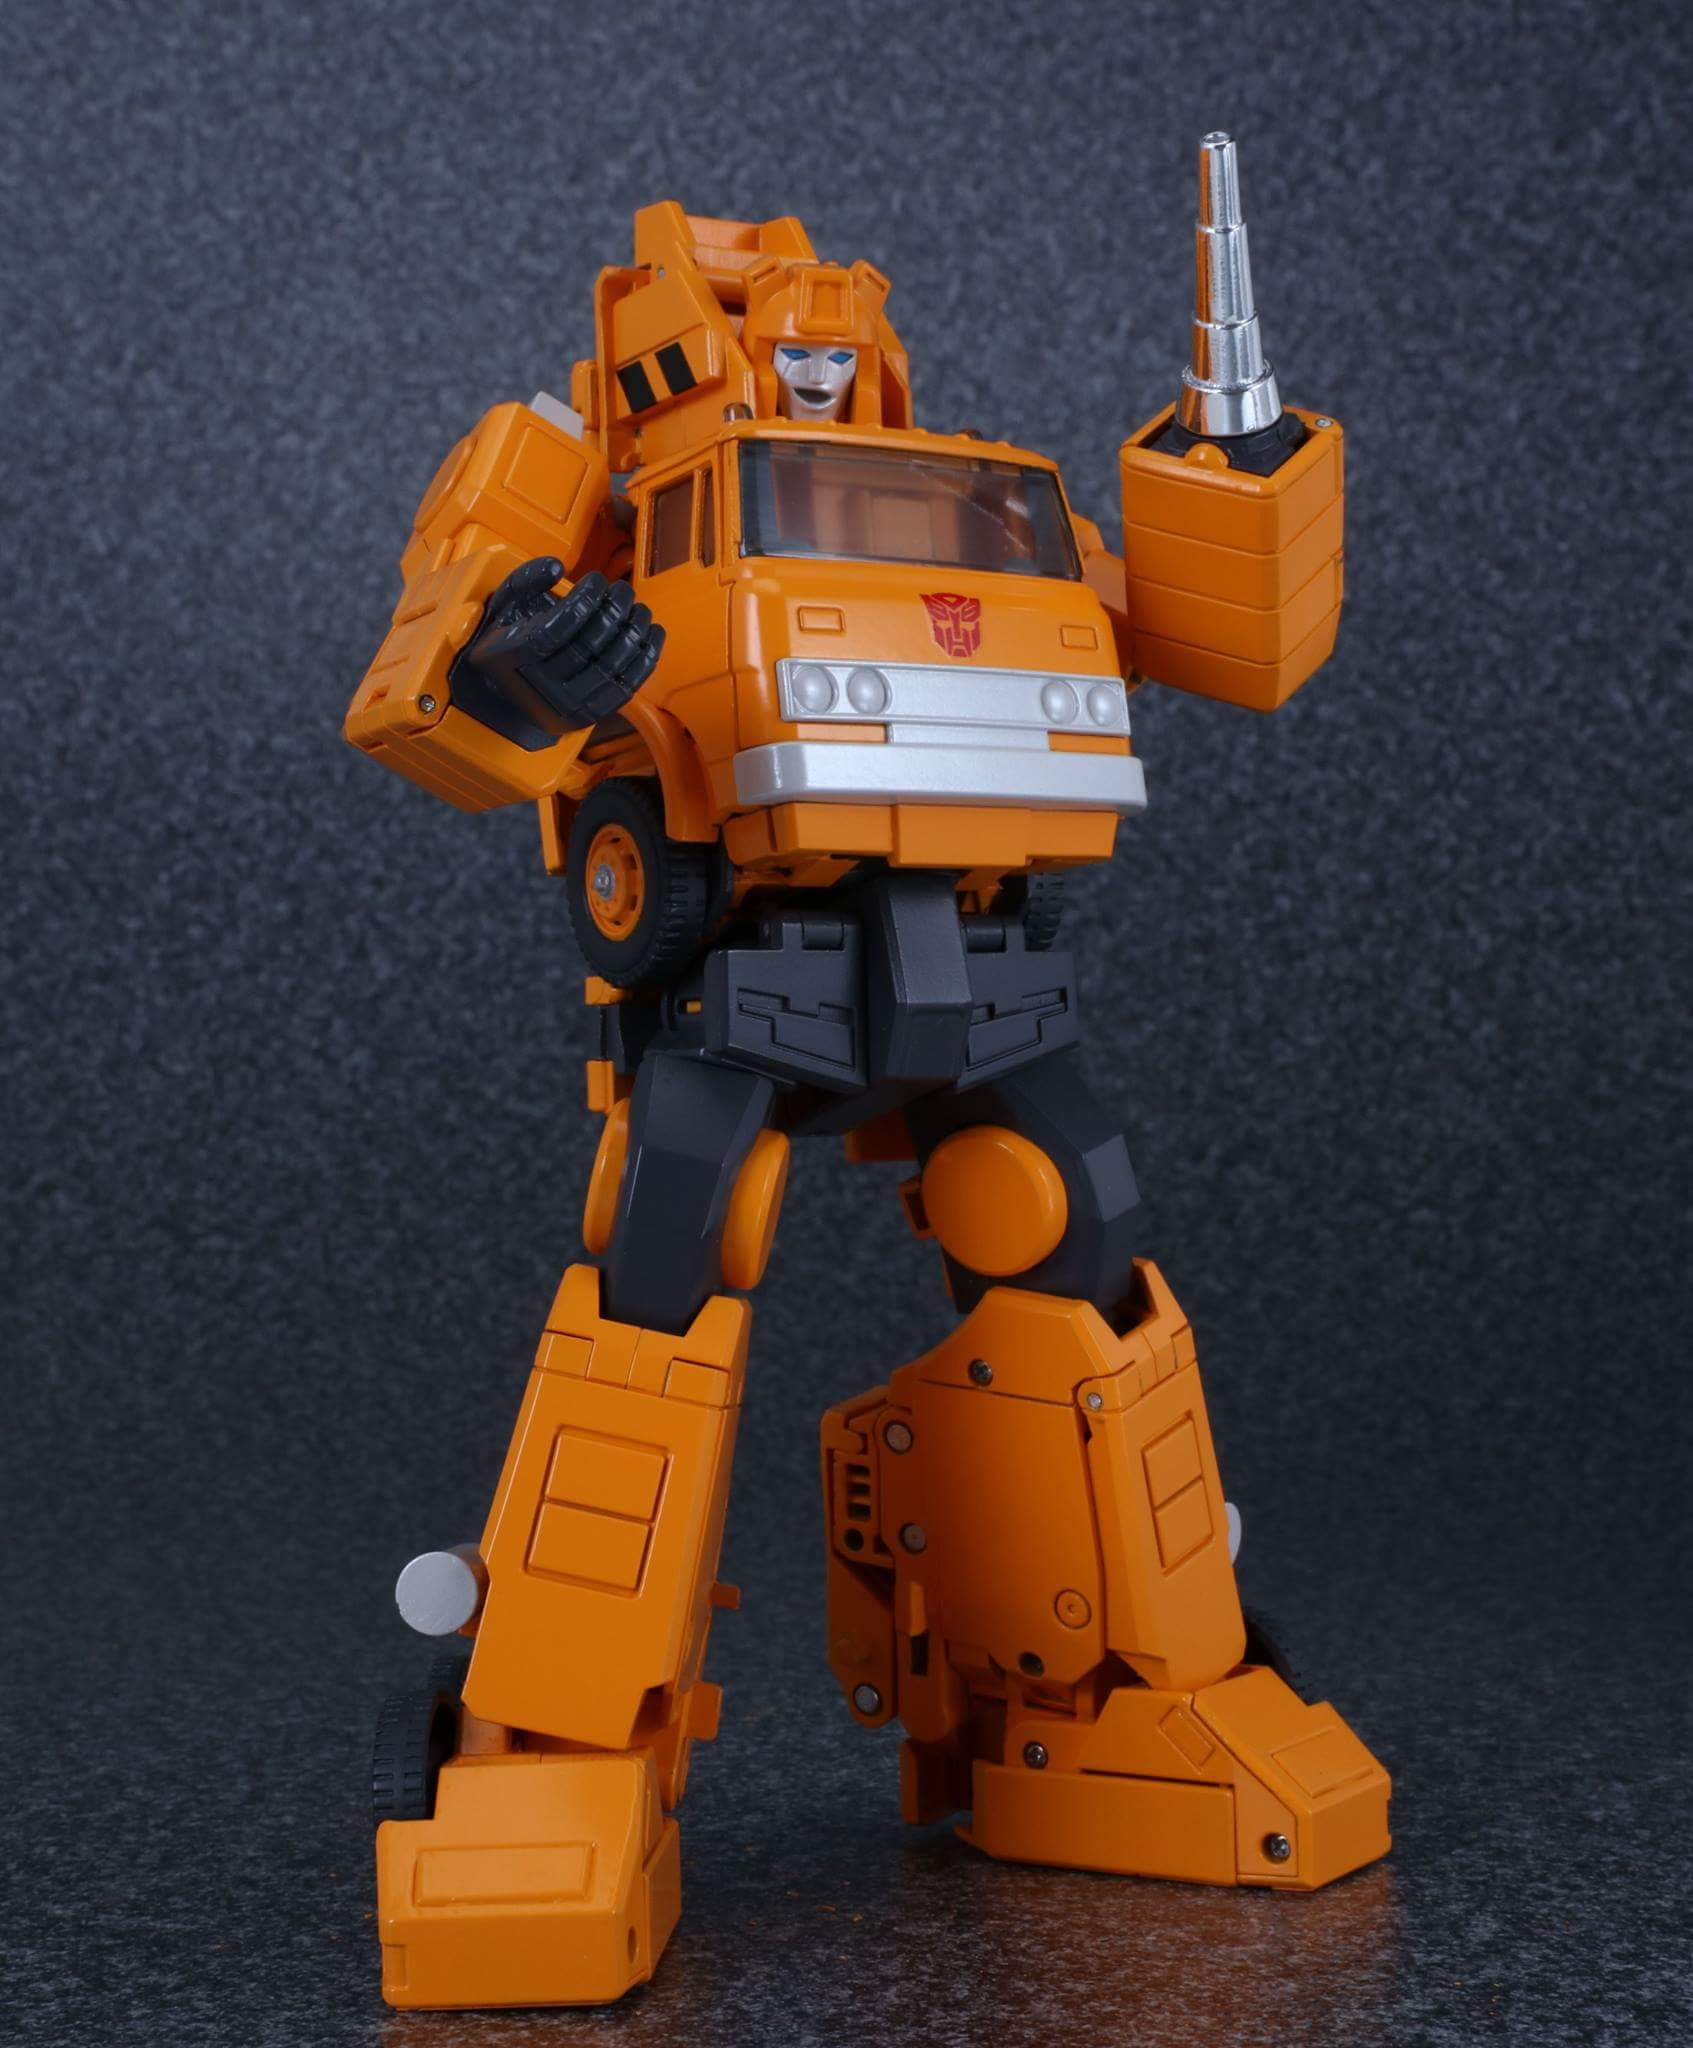 [Masterpiece] MP-35 Grapple/Grappin 7cJfMadD